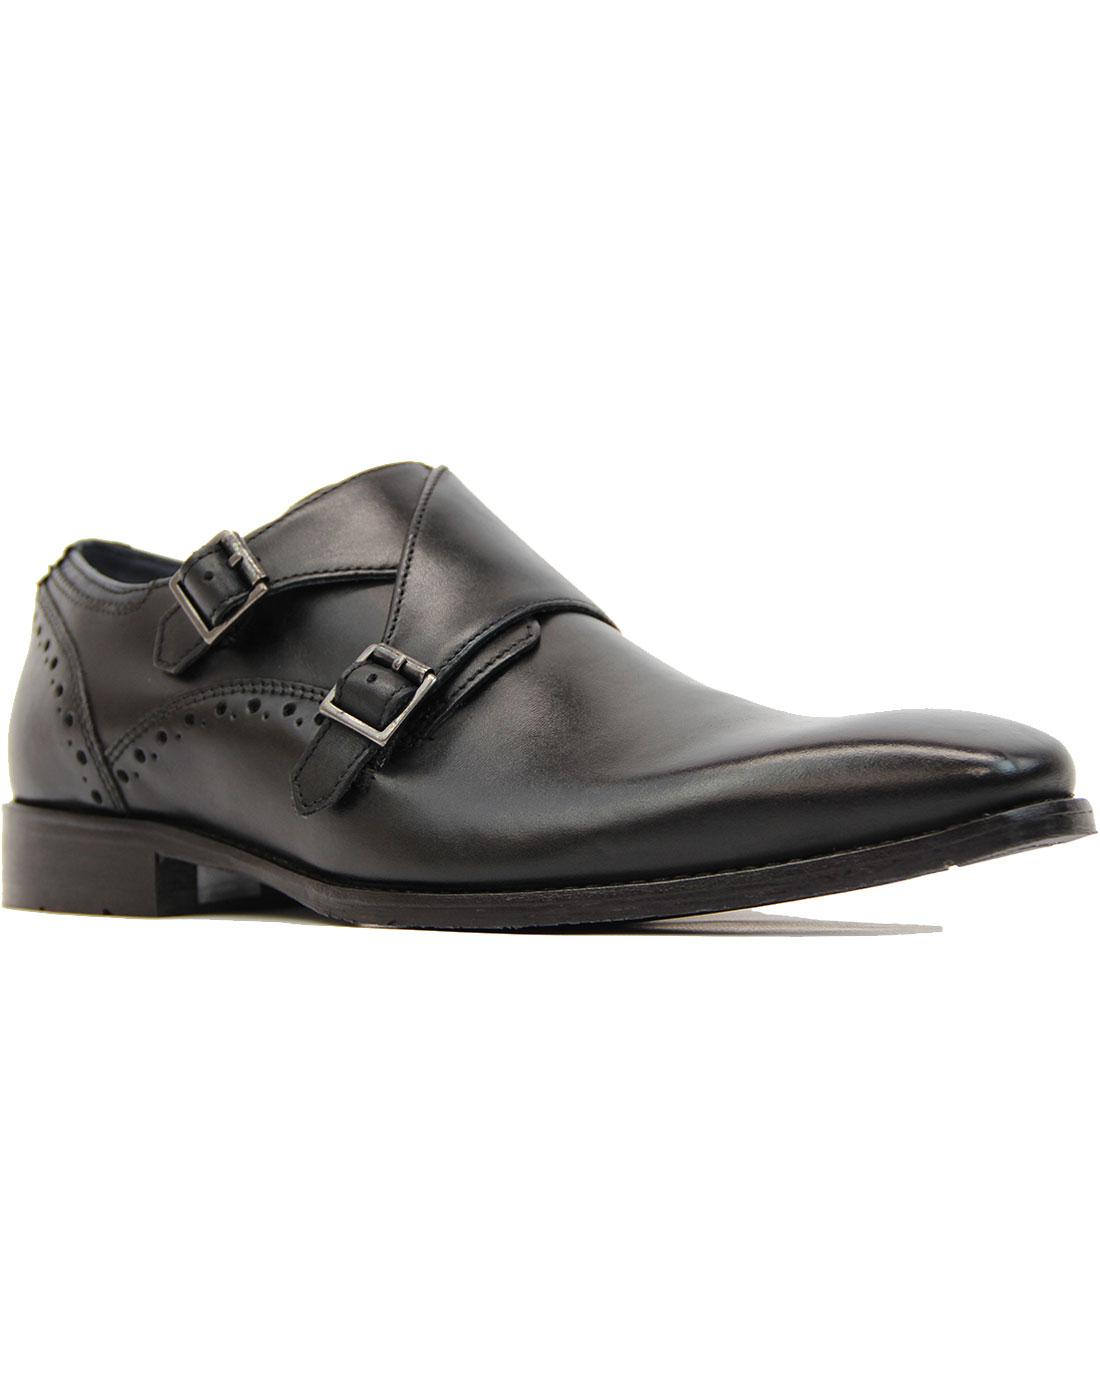 Ribchester Goodwin Smith Retro Monk Strap Shoes